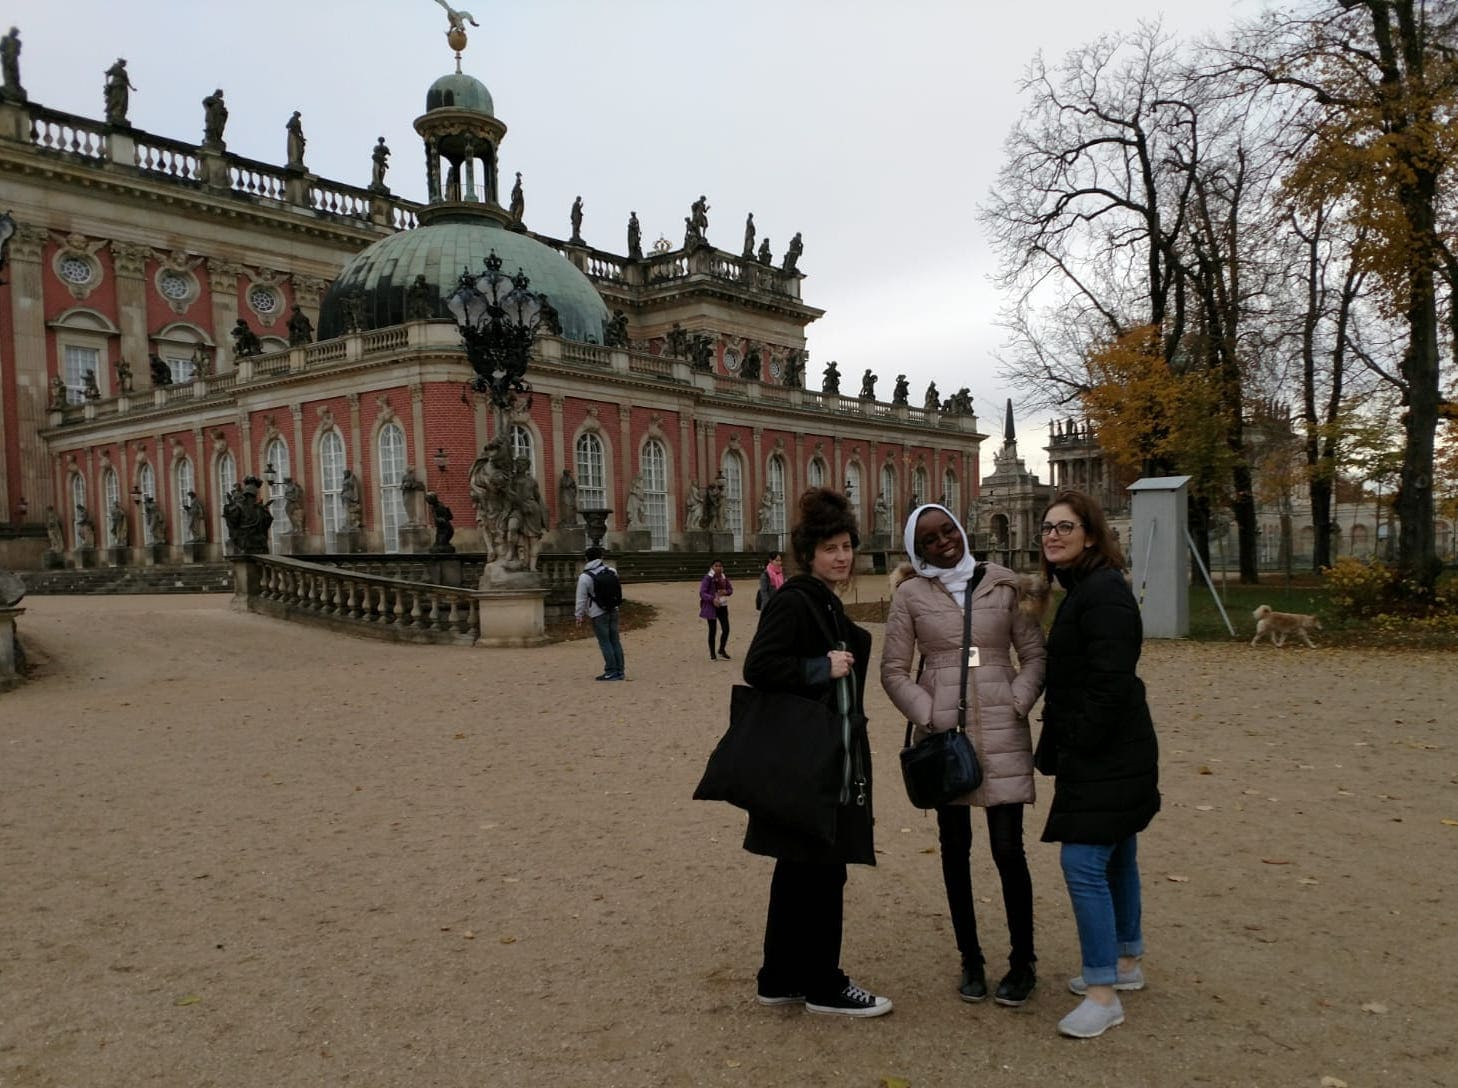 Berlin Film Residencies – 2018 BERLIN AiR fellows Hadar Morag, Aicha Macky and Laila Abbas visiting Park Sanssouci